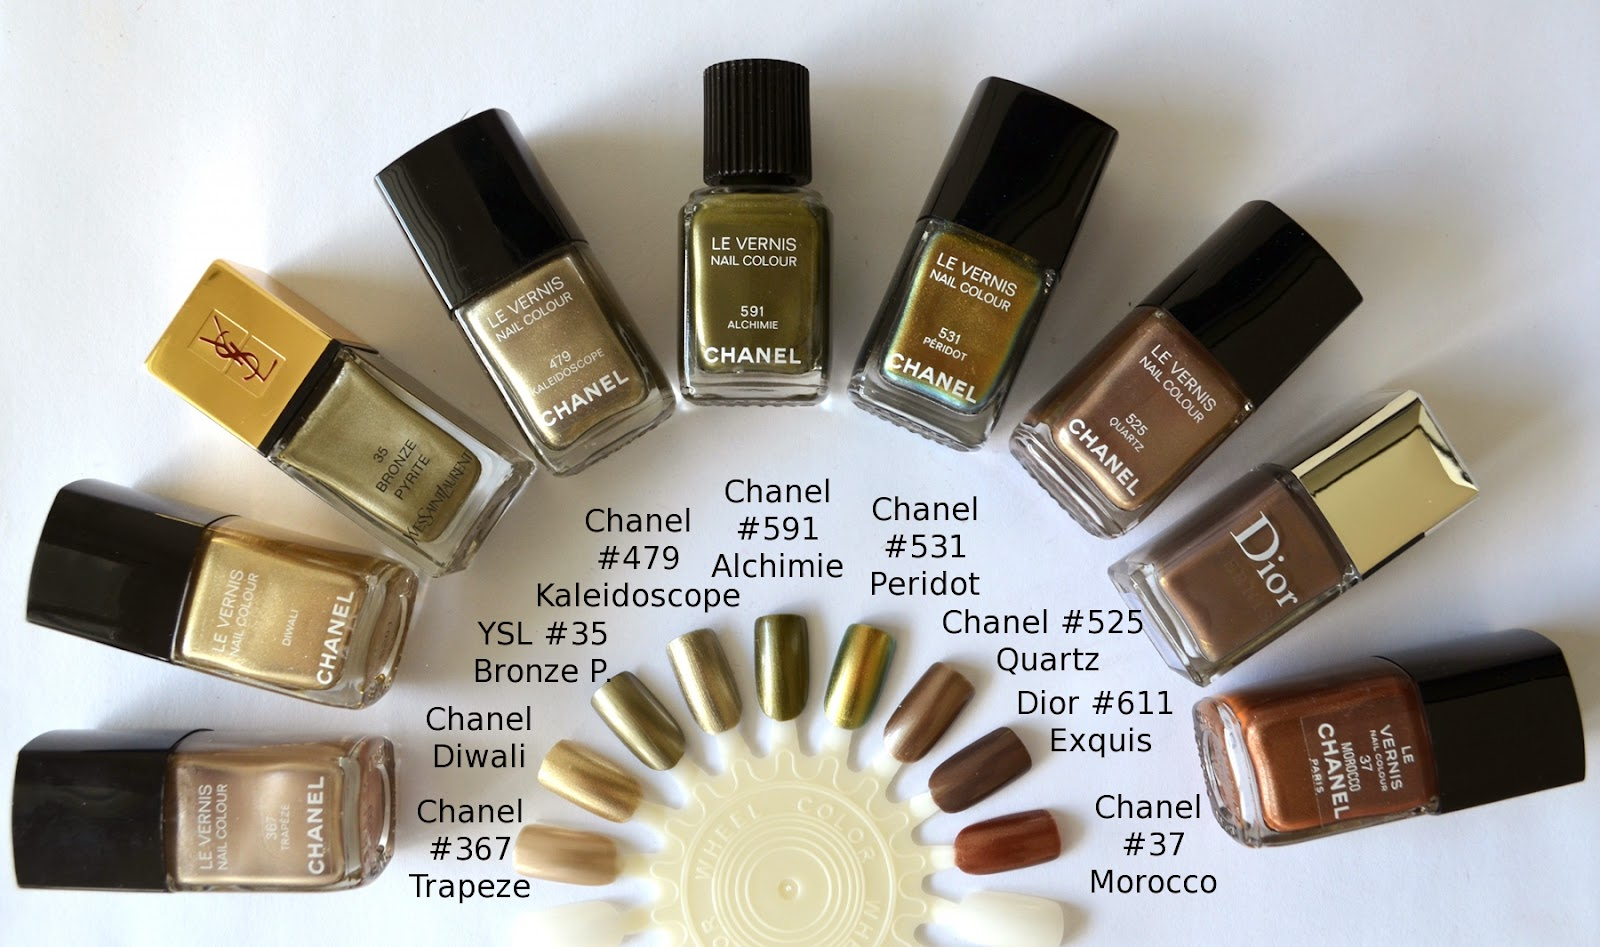 Chanel Le Vernis 591 Alchimie From Superstition Fall 2013 Collection Color Me Loud